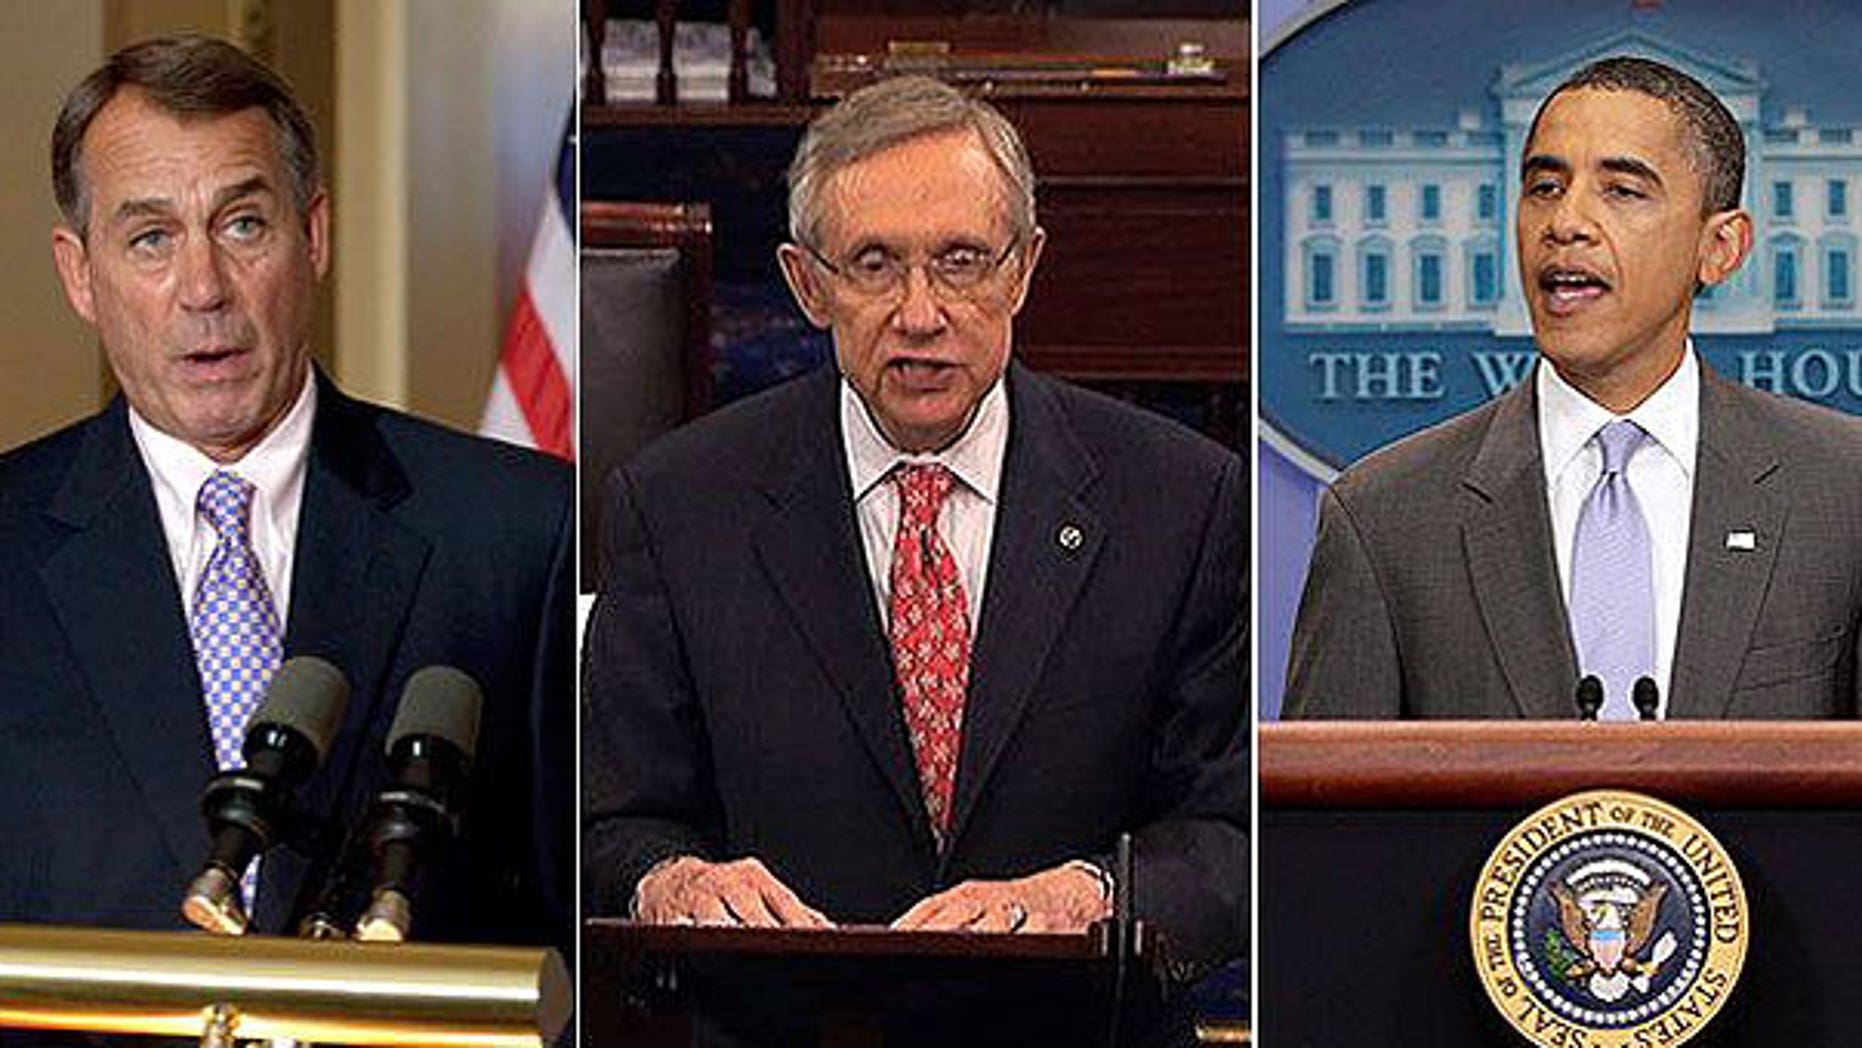 Sunday: President Obama announced an agreement with GOP and Democratic leaders on a compromise debt-reduction plan.